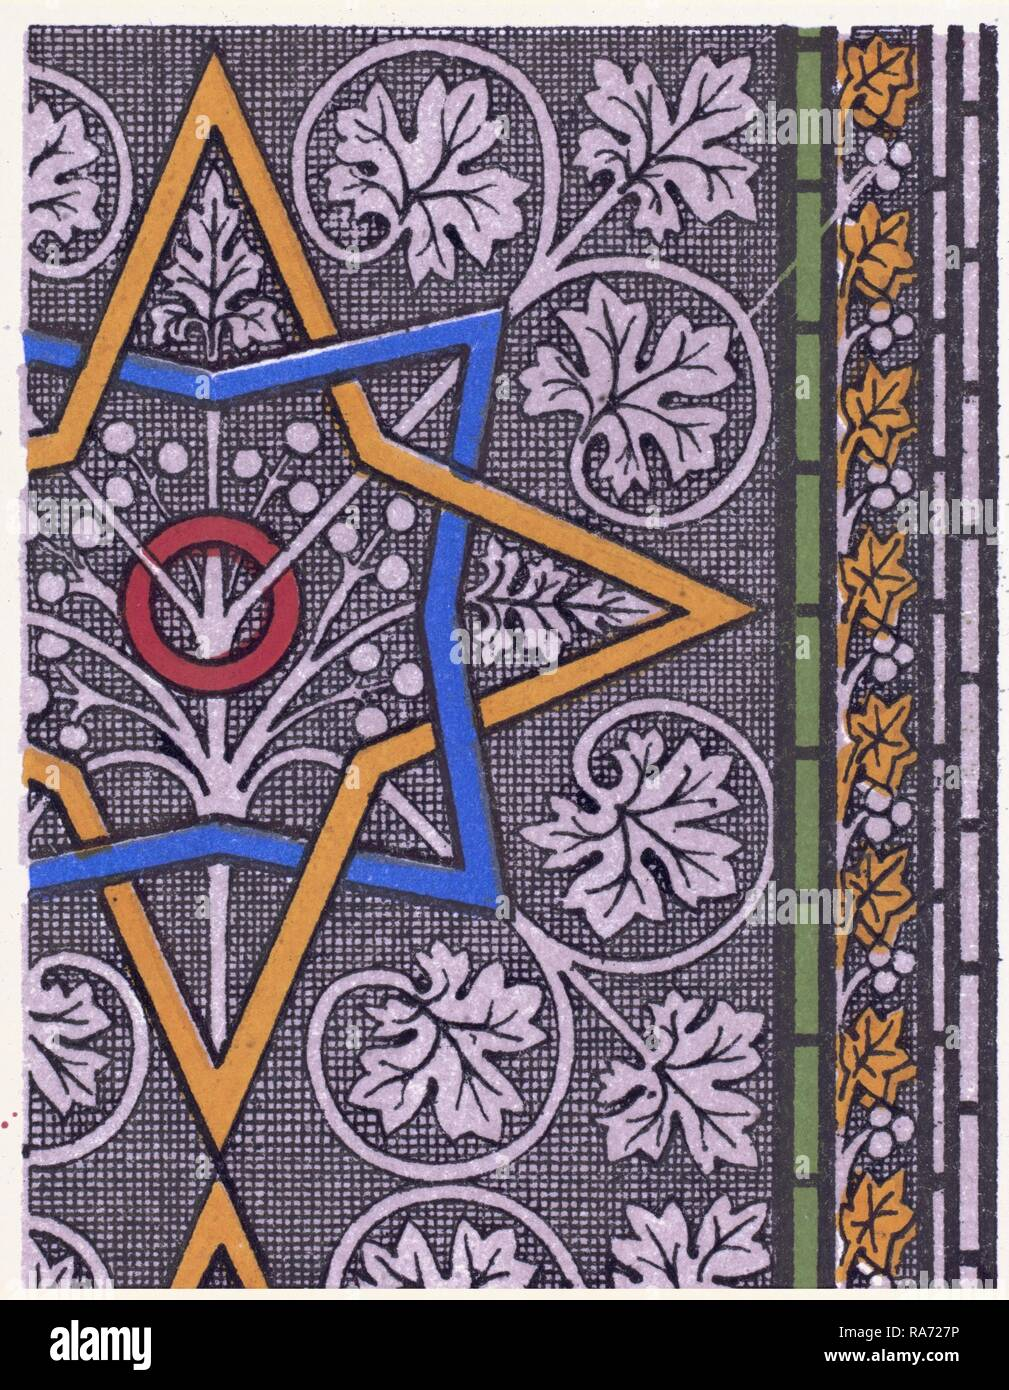 Mediæval ornament. Reimagined by Gibon. Classic art with a modern twist reimagined - Stock Image